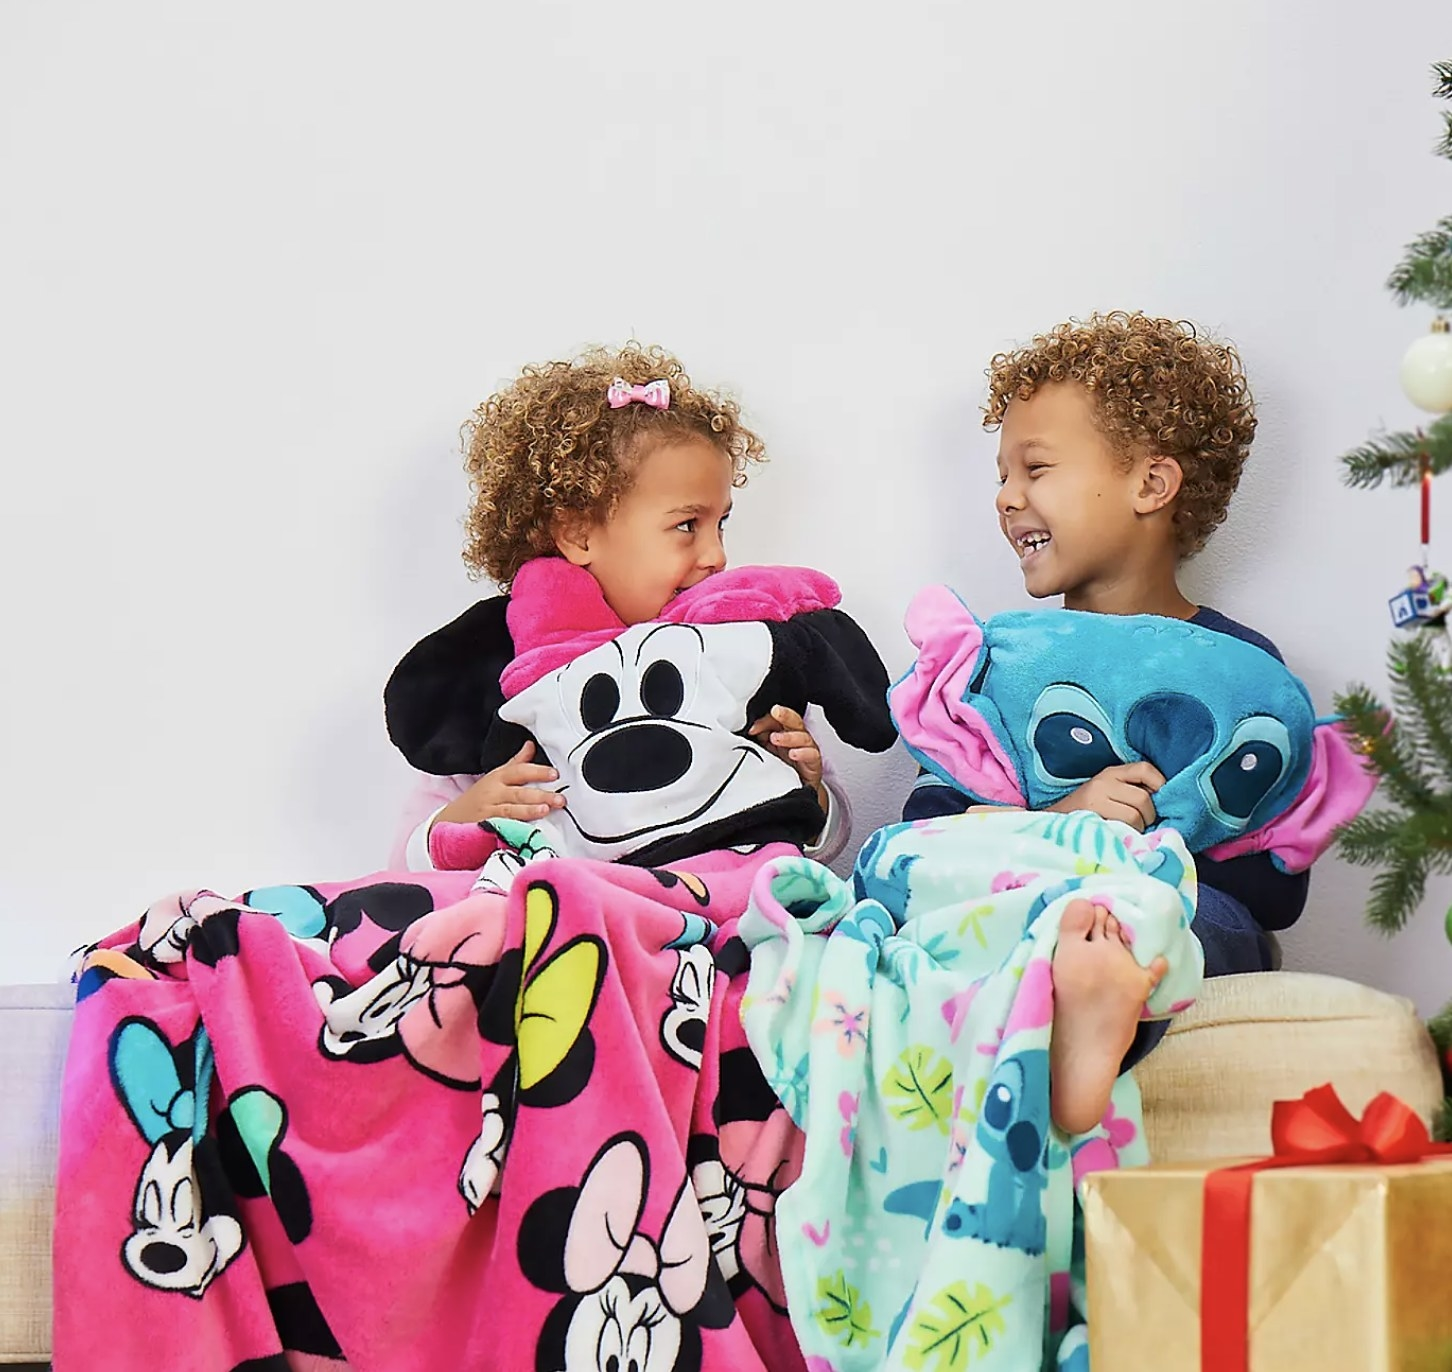 Two people in throw blankets of Stitch and Minnie Mouse